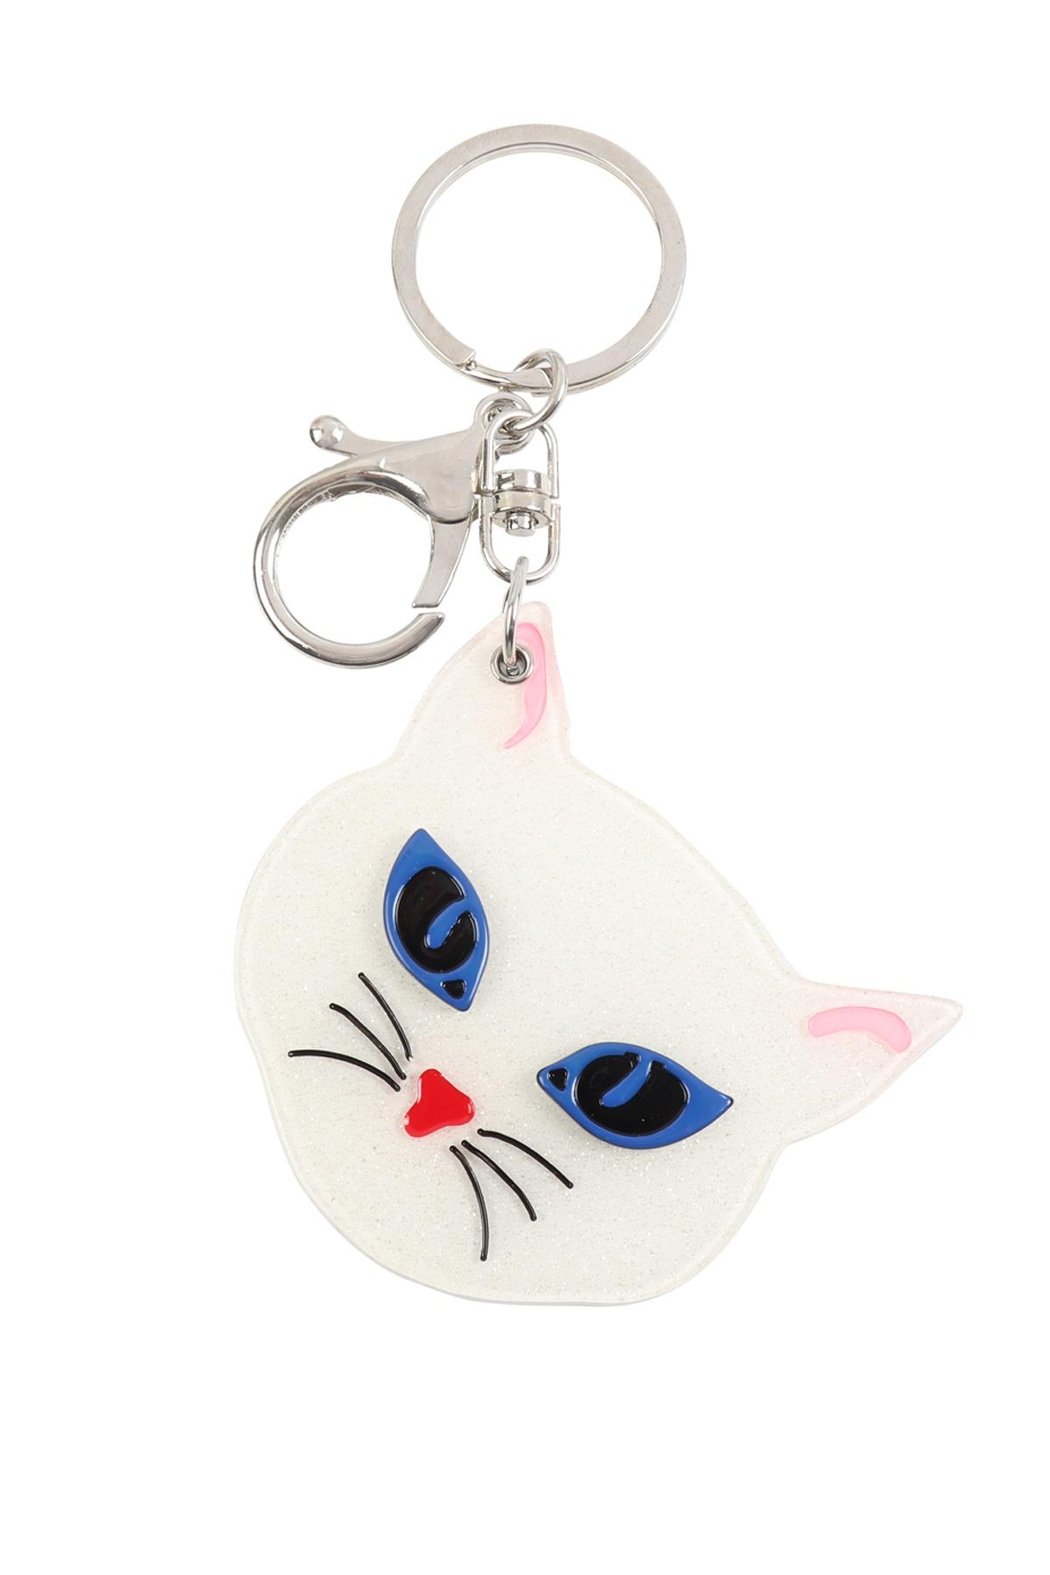 Riah Fashion Gray/white-Assorted-Cat-W/-Mirror-Keychain - Front Full Image